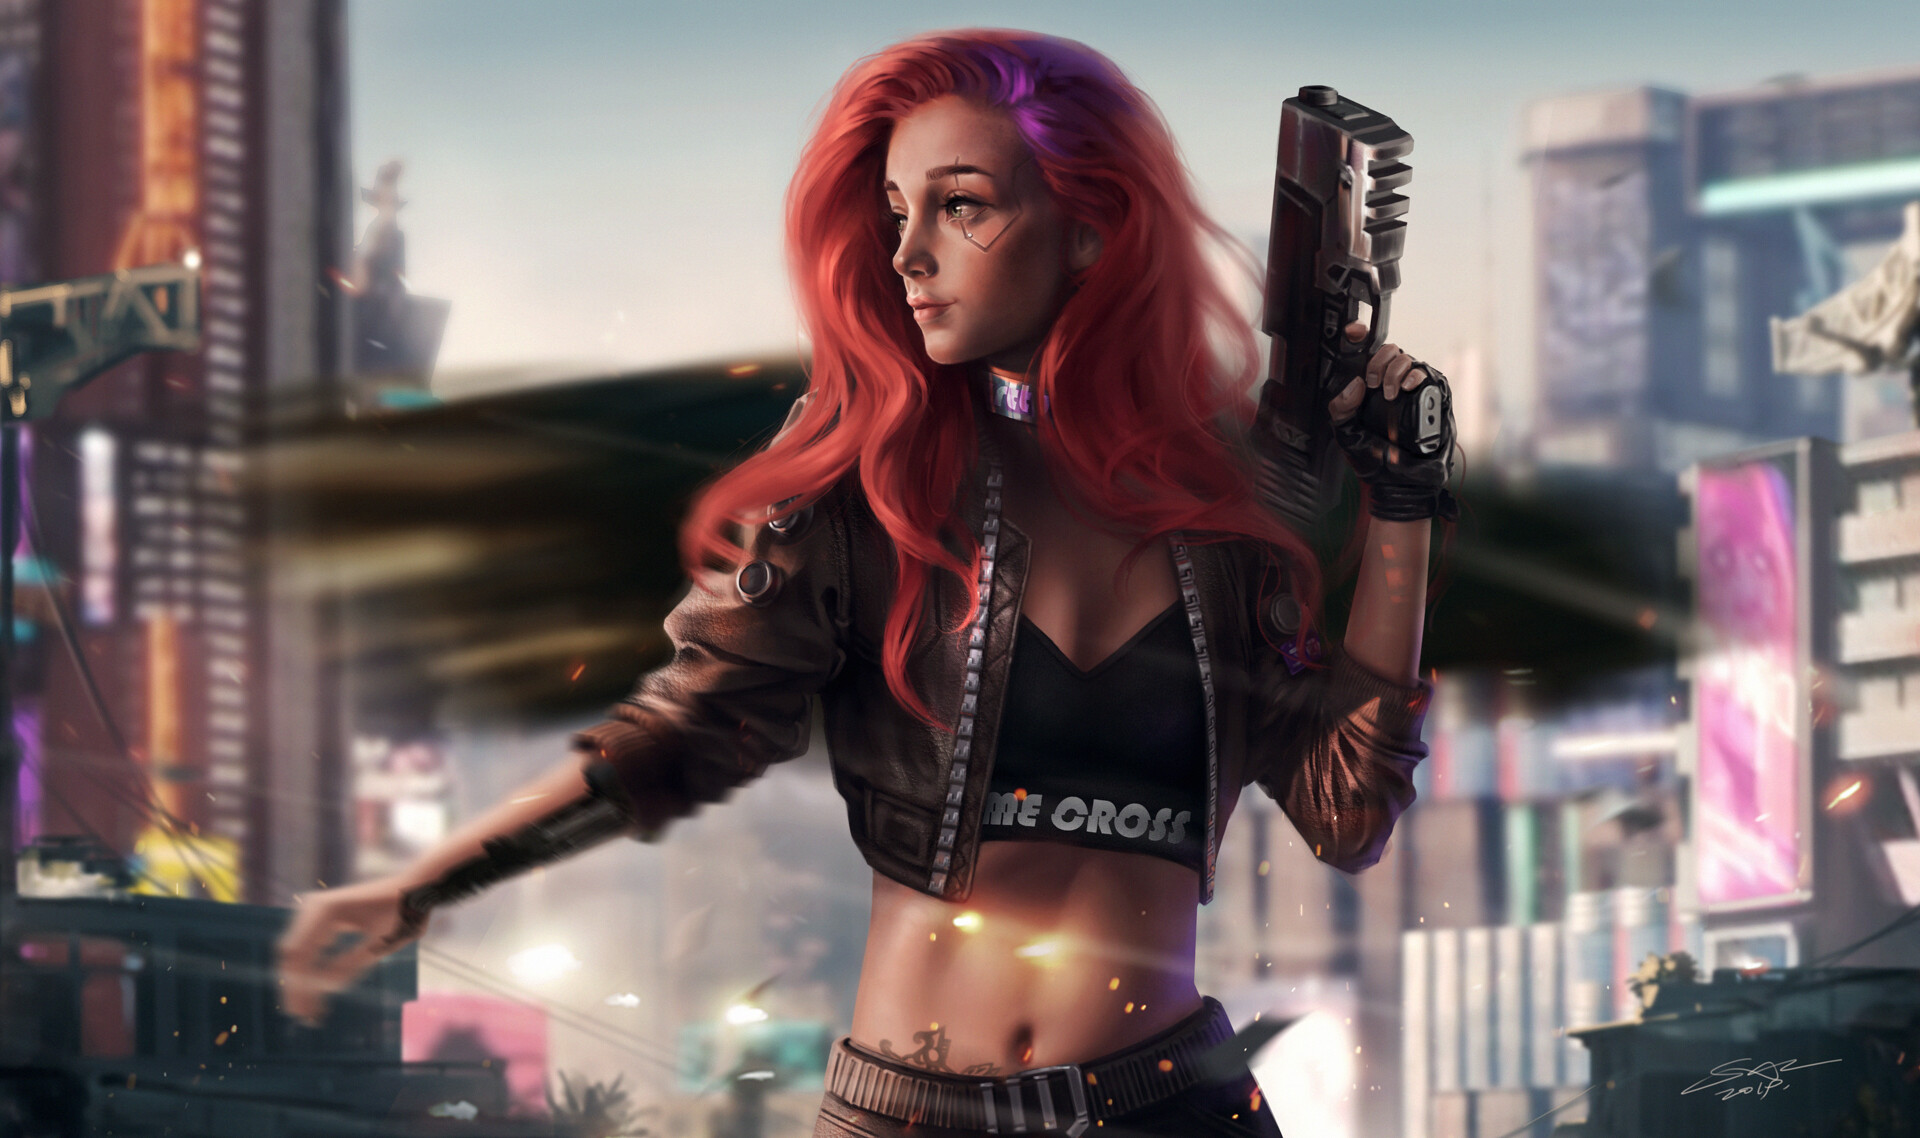 Cyberpunk 2077 Hd Wallpaper Background Image 1920x1138 Id 1033554 Wallpaper Abyss